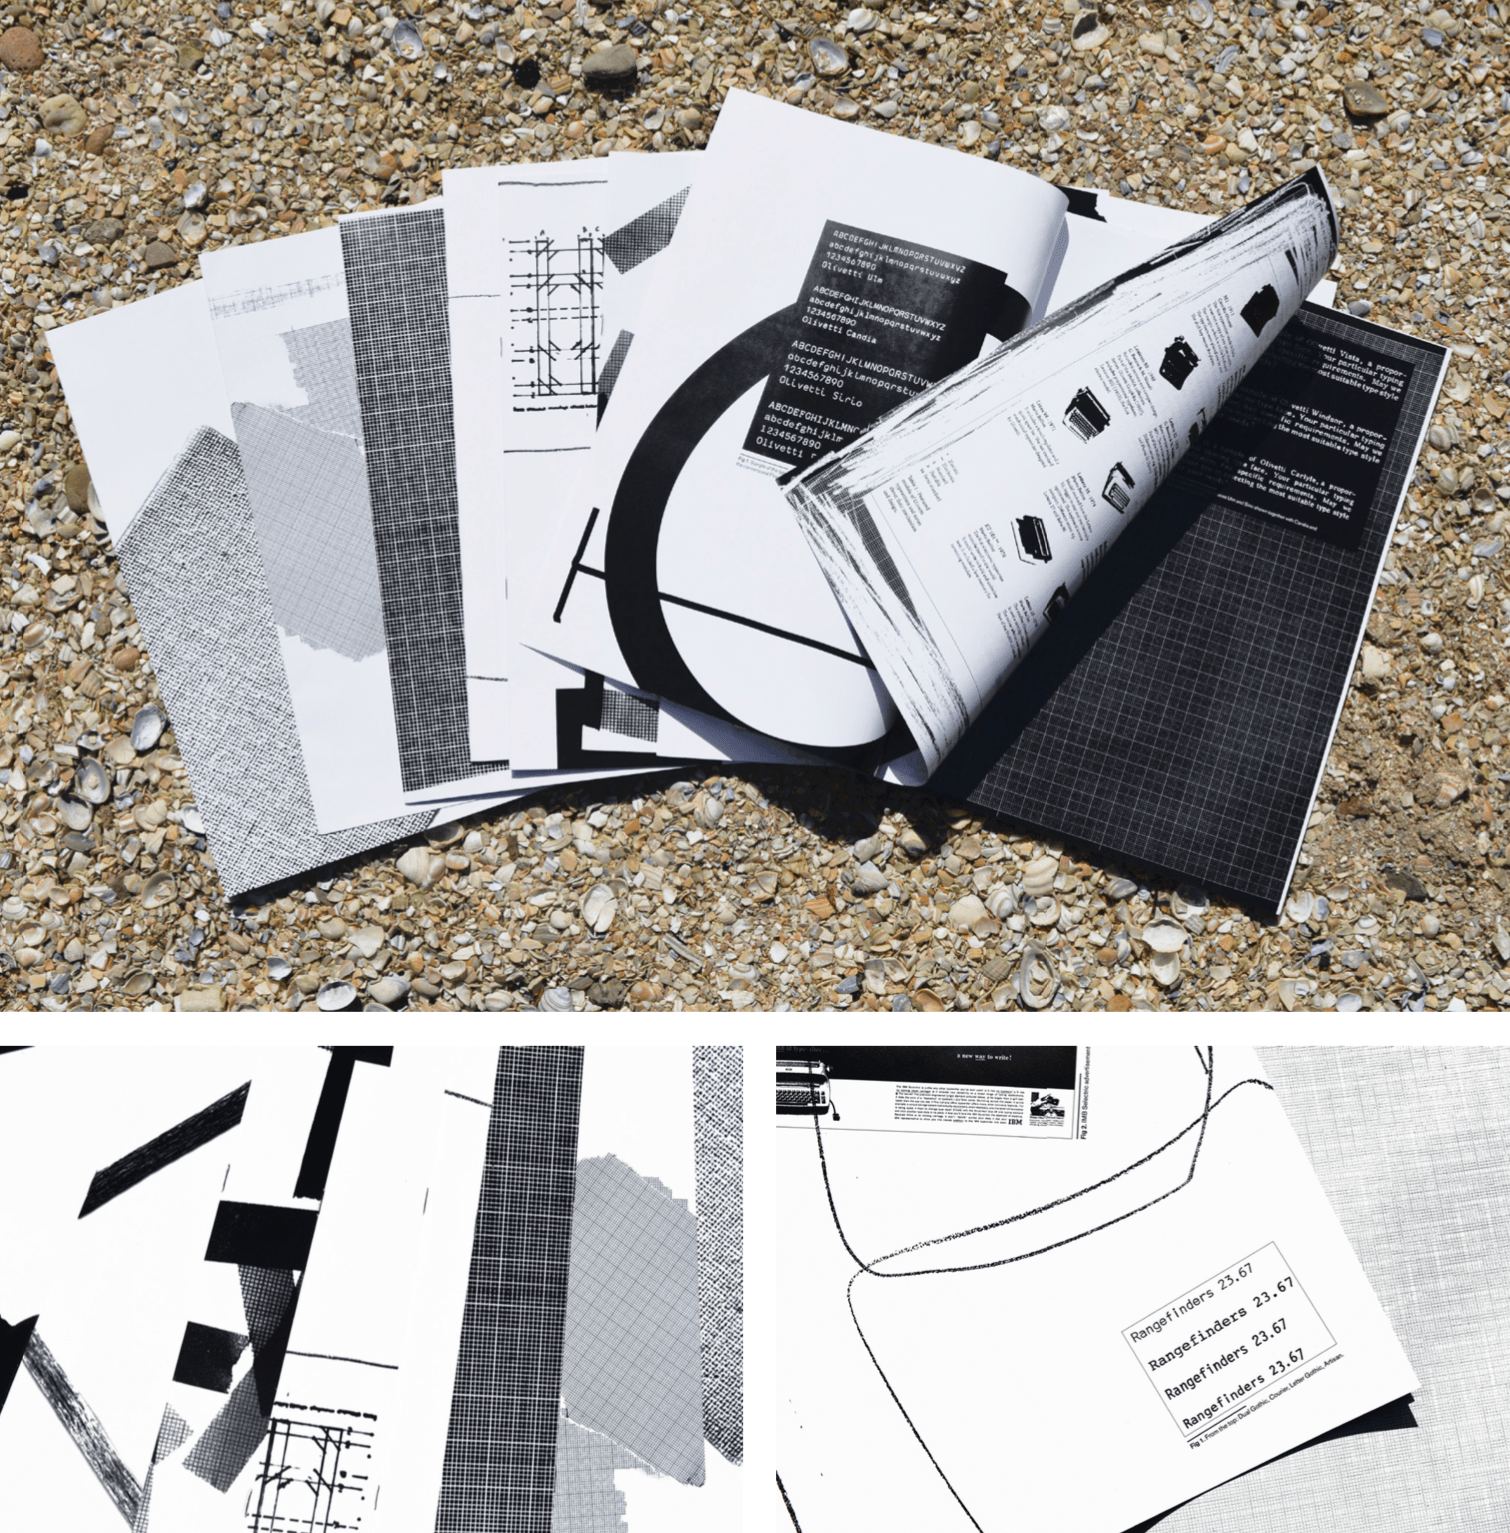 A series of typographic zines containing a visual research inspired by typewriter fonts designed for the Italian typewriter brand Olivetti. 2018.